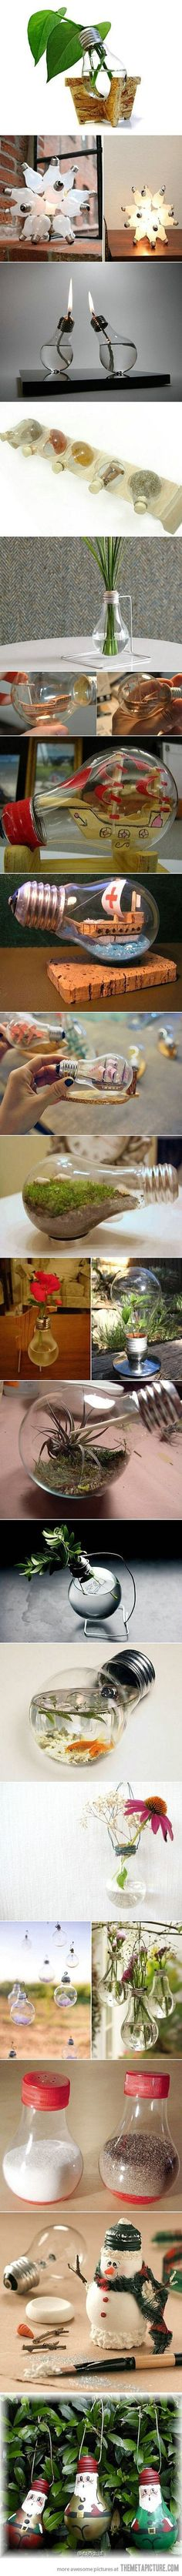 Amazing Things to Do With Light Bulbs